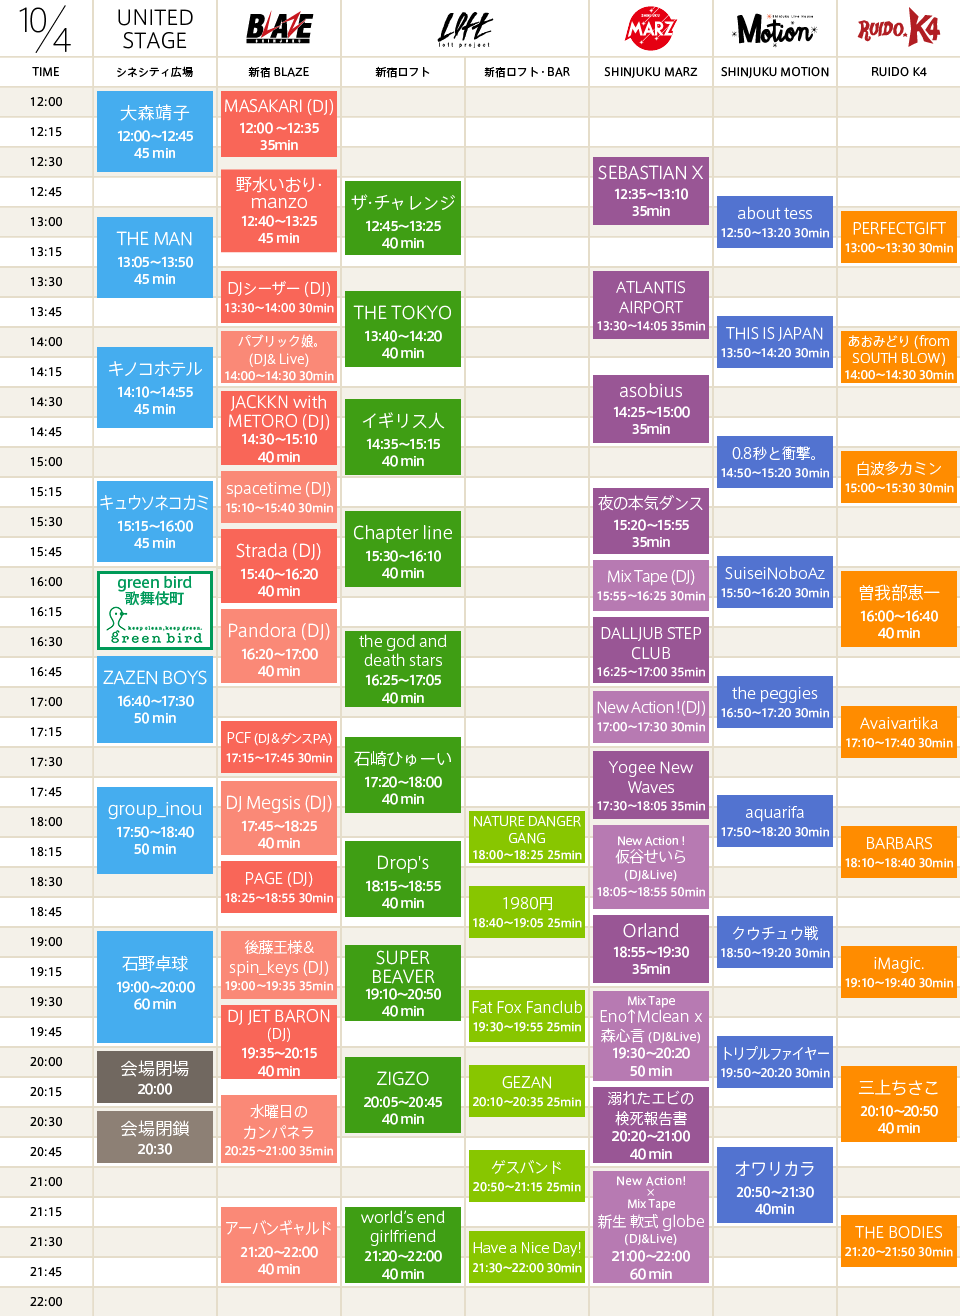 timetable_20140924.png